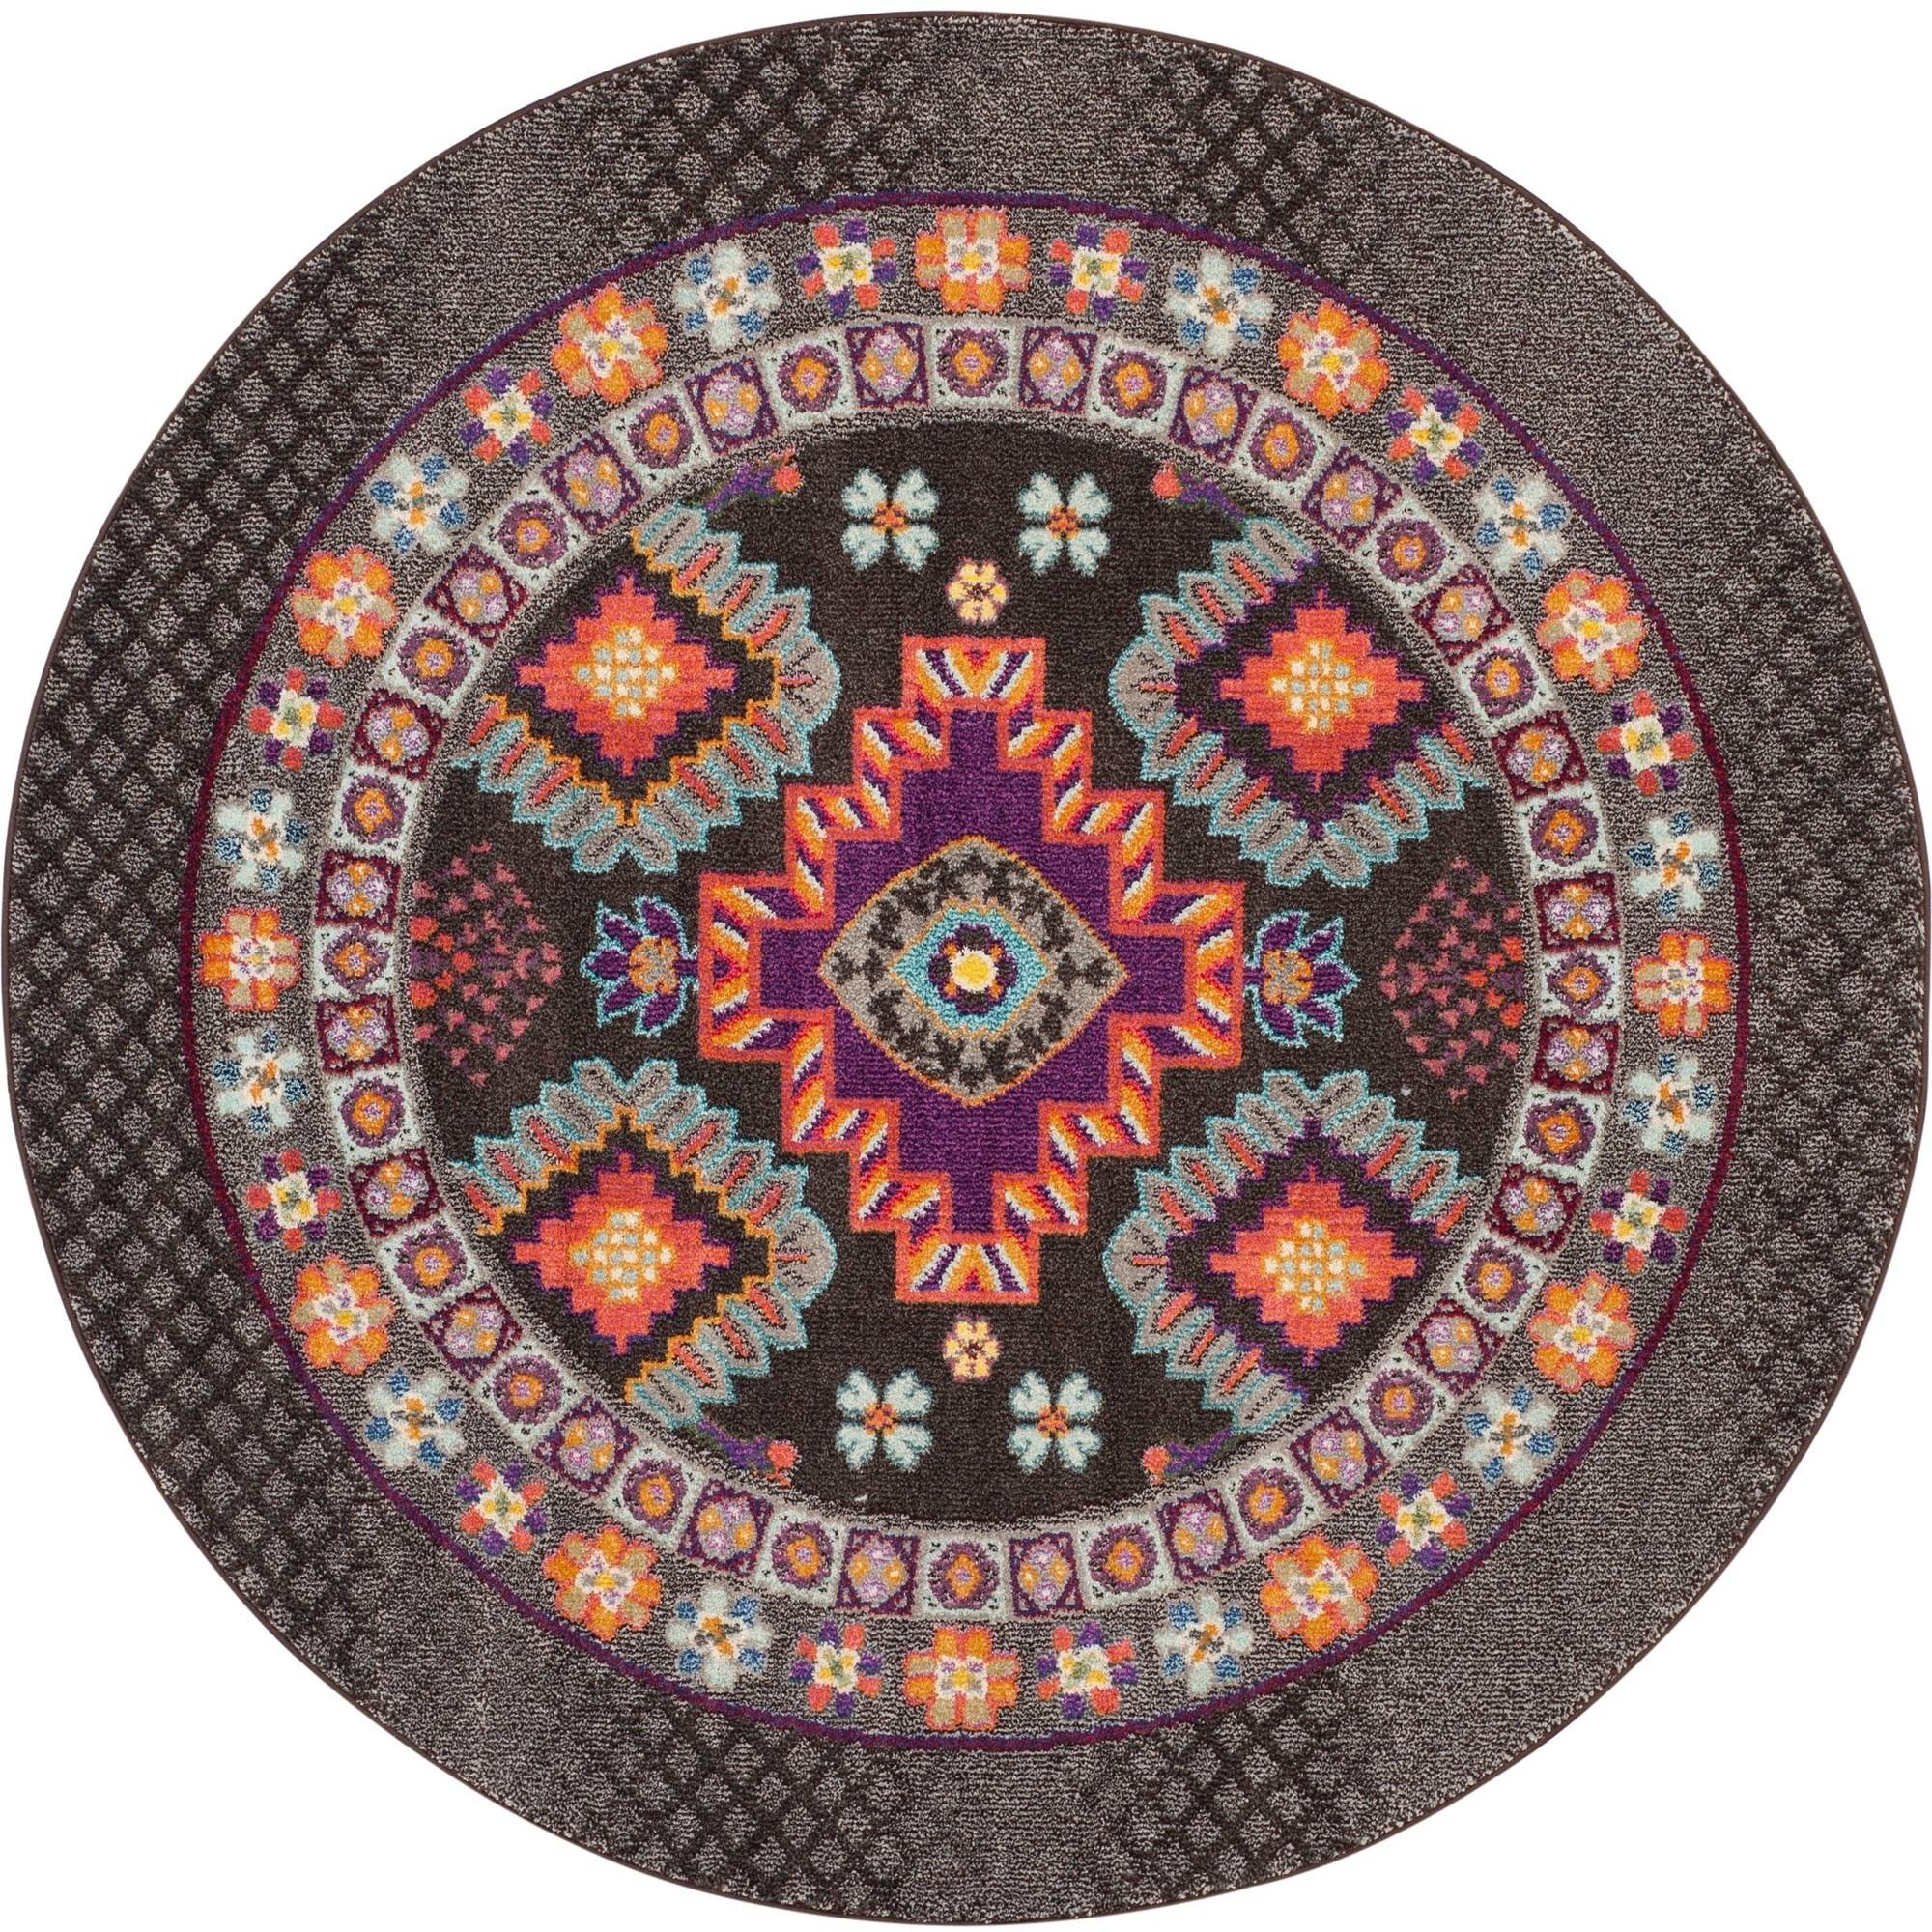 Safavieh Monaco Rosalynne Power Loomed Area Rug, Brown/Multi